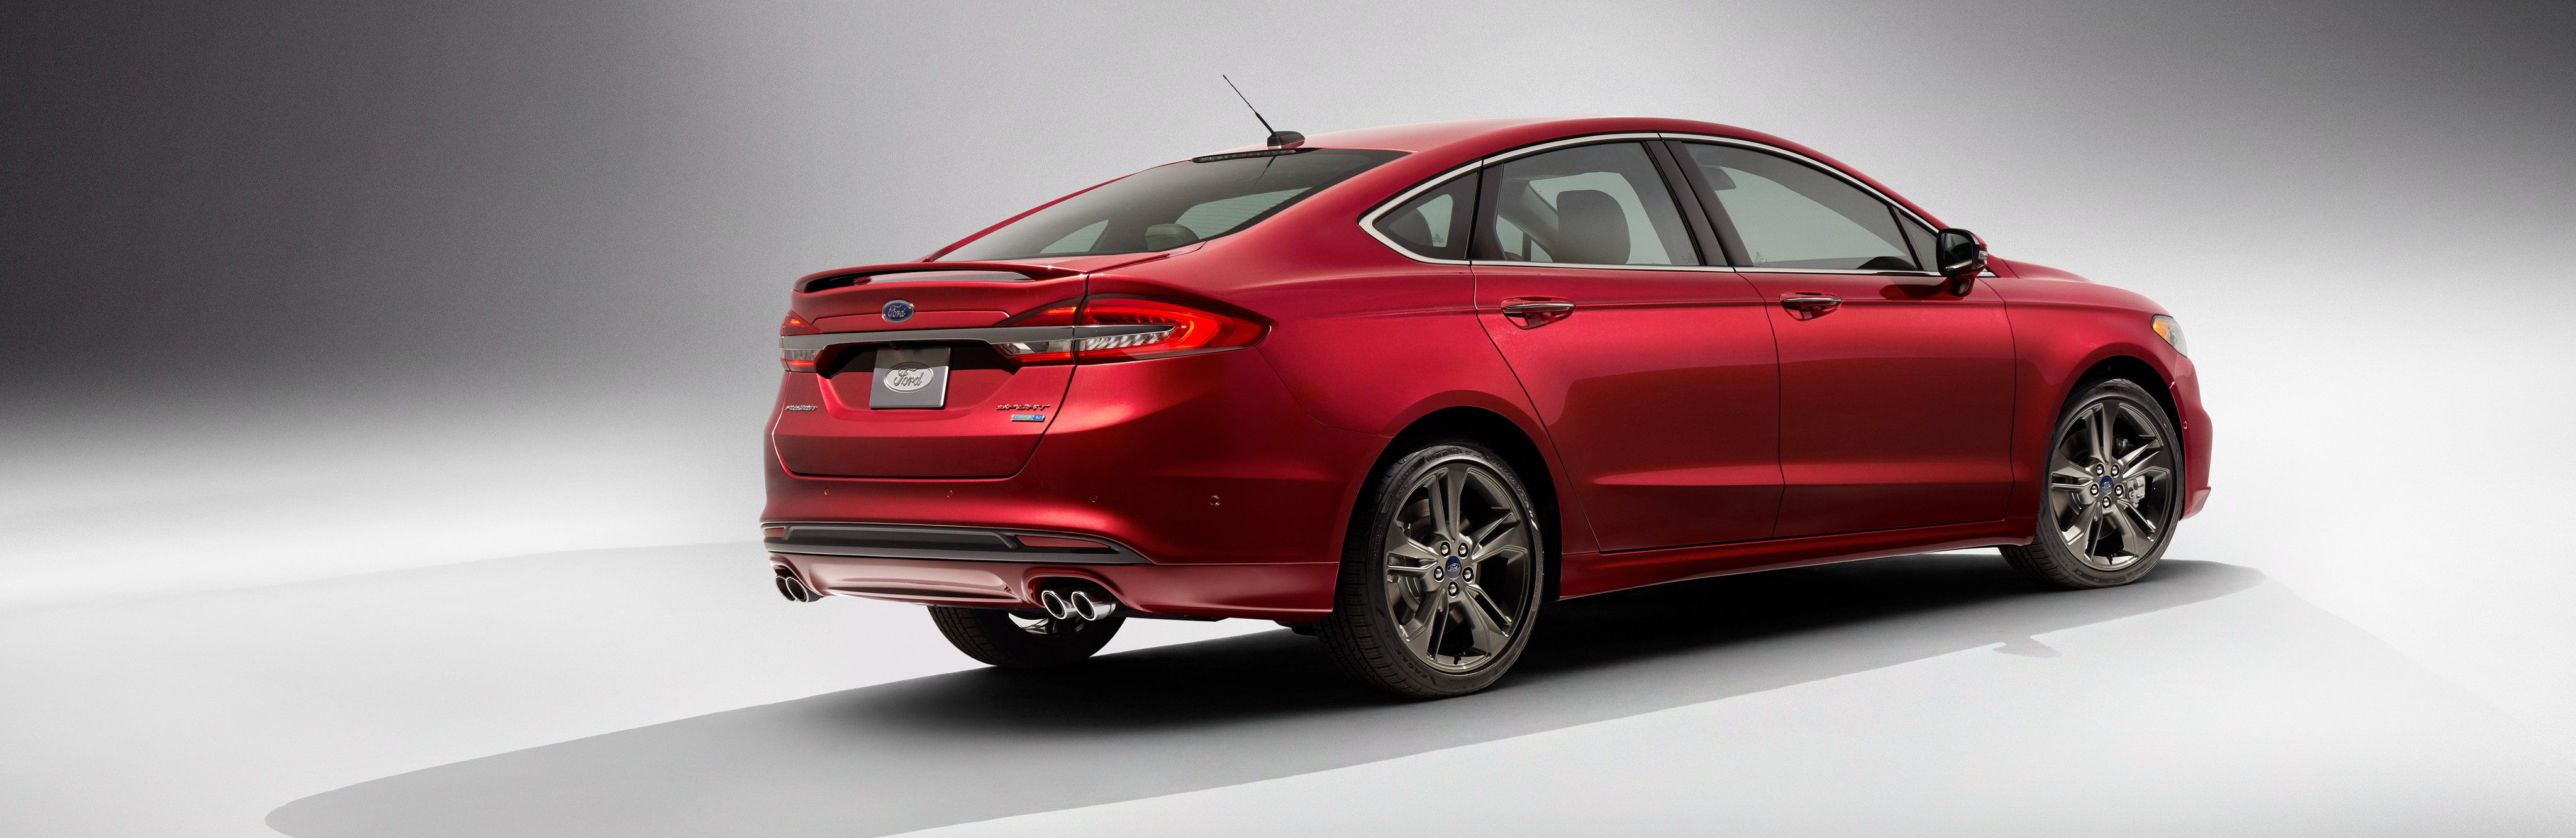 2020 Ford Fusion Redesign Cancelled Declining Sales Are To Blame